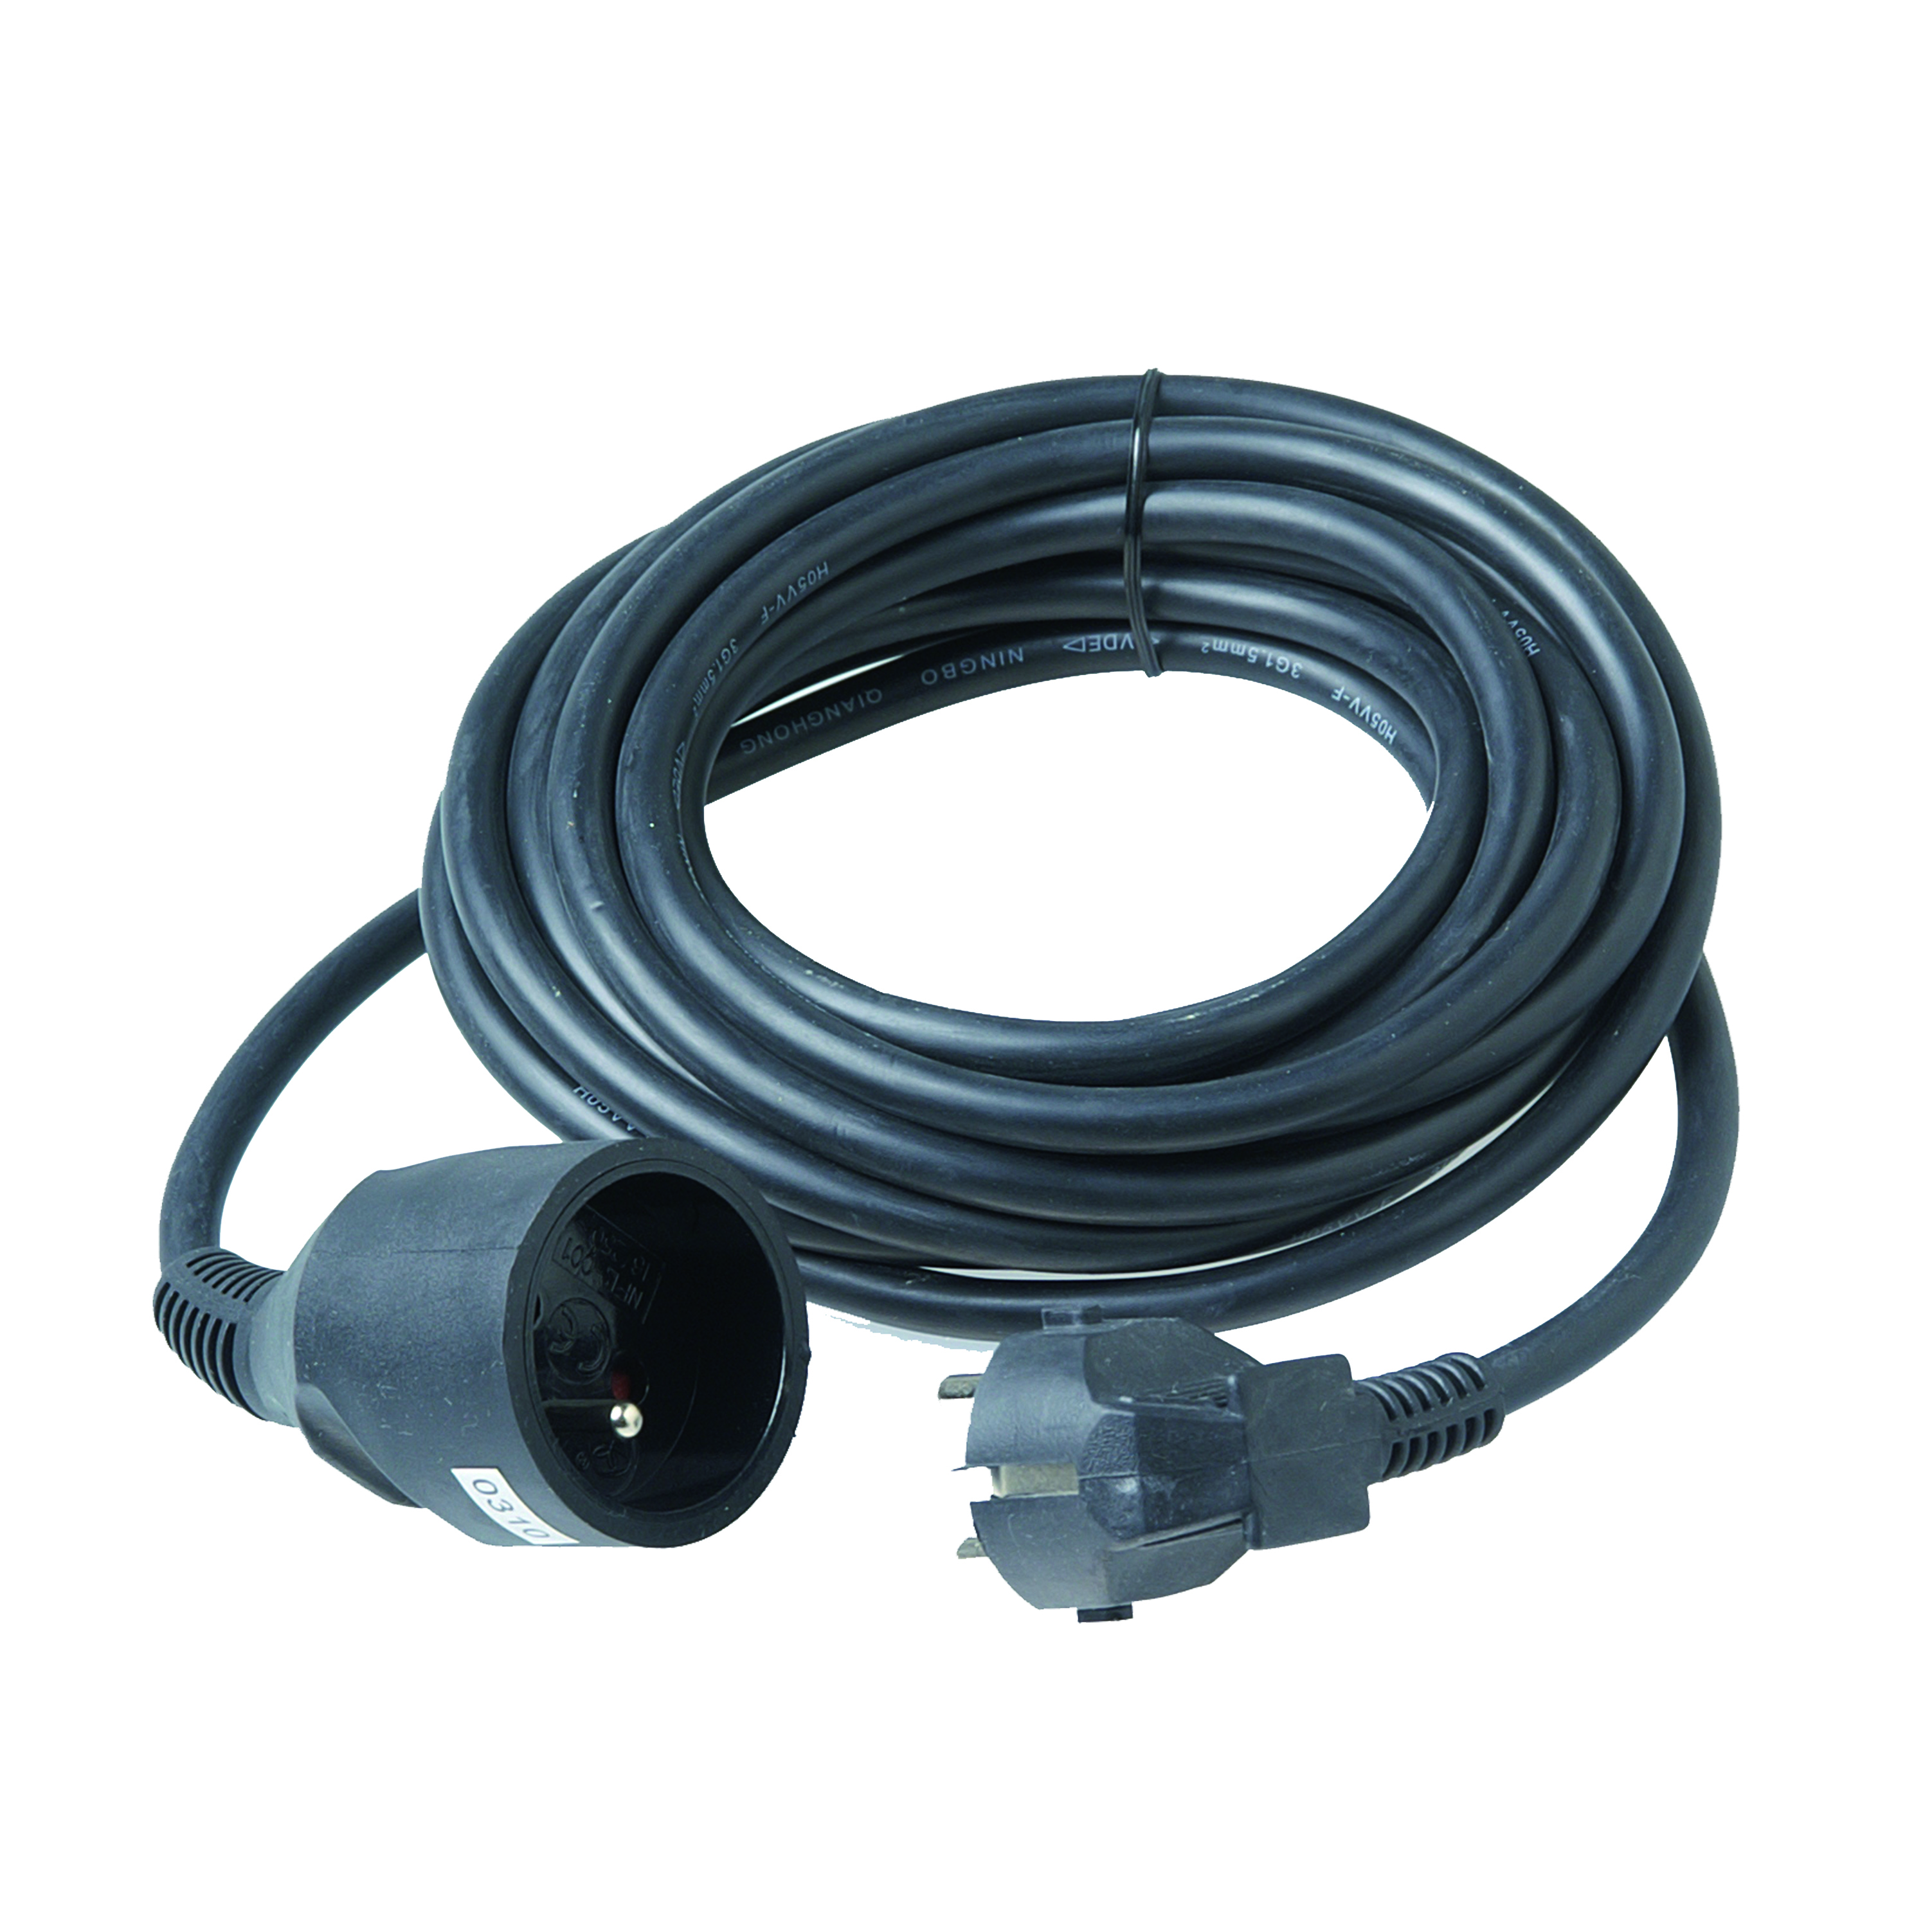 Extension cord 3G1,5mm² PVC 5m black